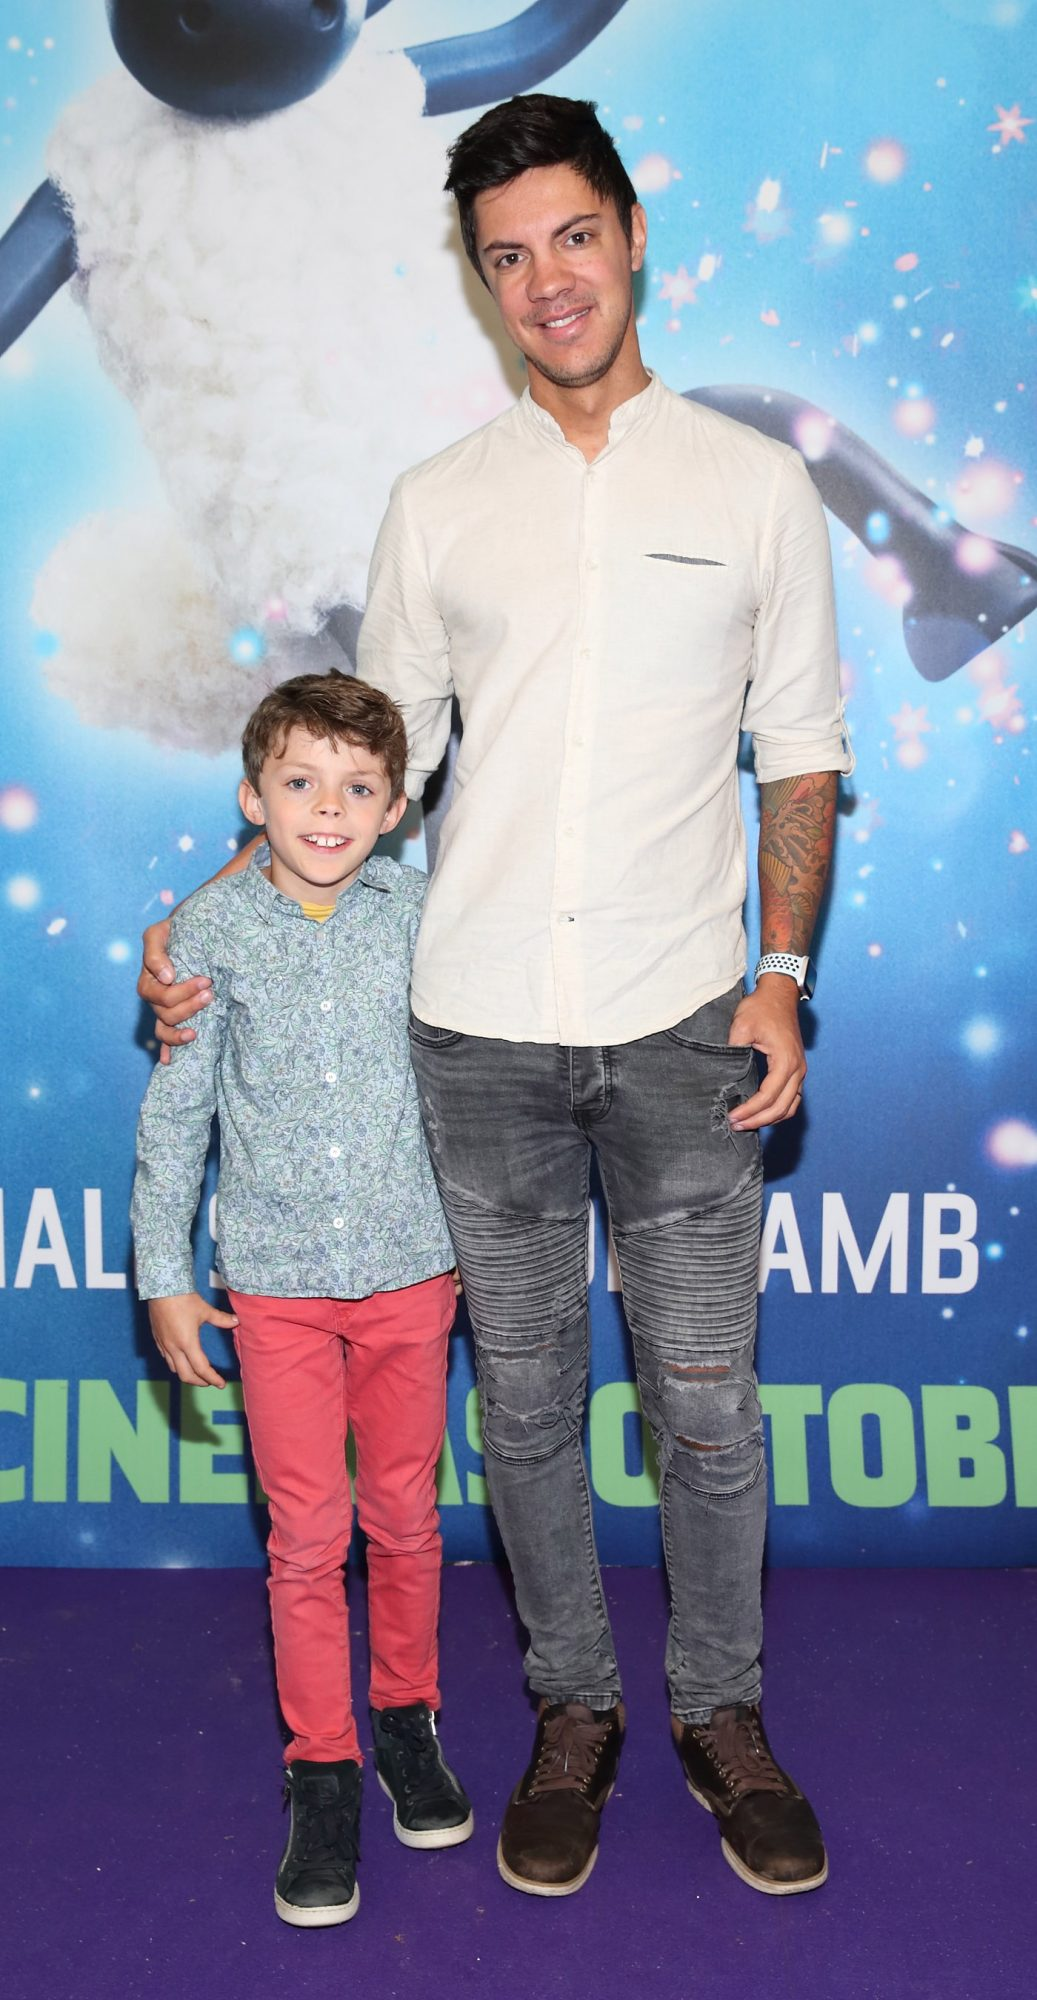 Luca Hengst and Thierry Hengst at the special preview screening of Shaun the Sheep at the Odeon Cinema In Point Square, Dublin.  Pic: Brian McEvoy Photography